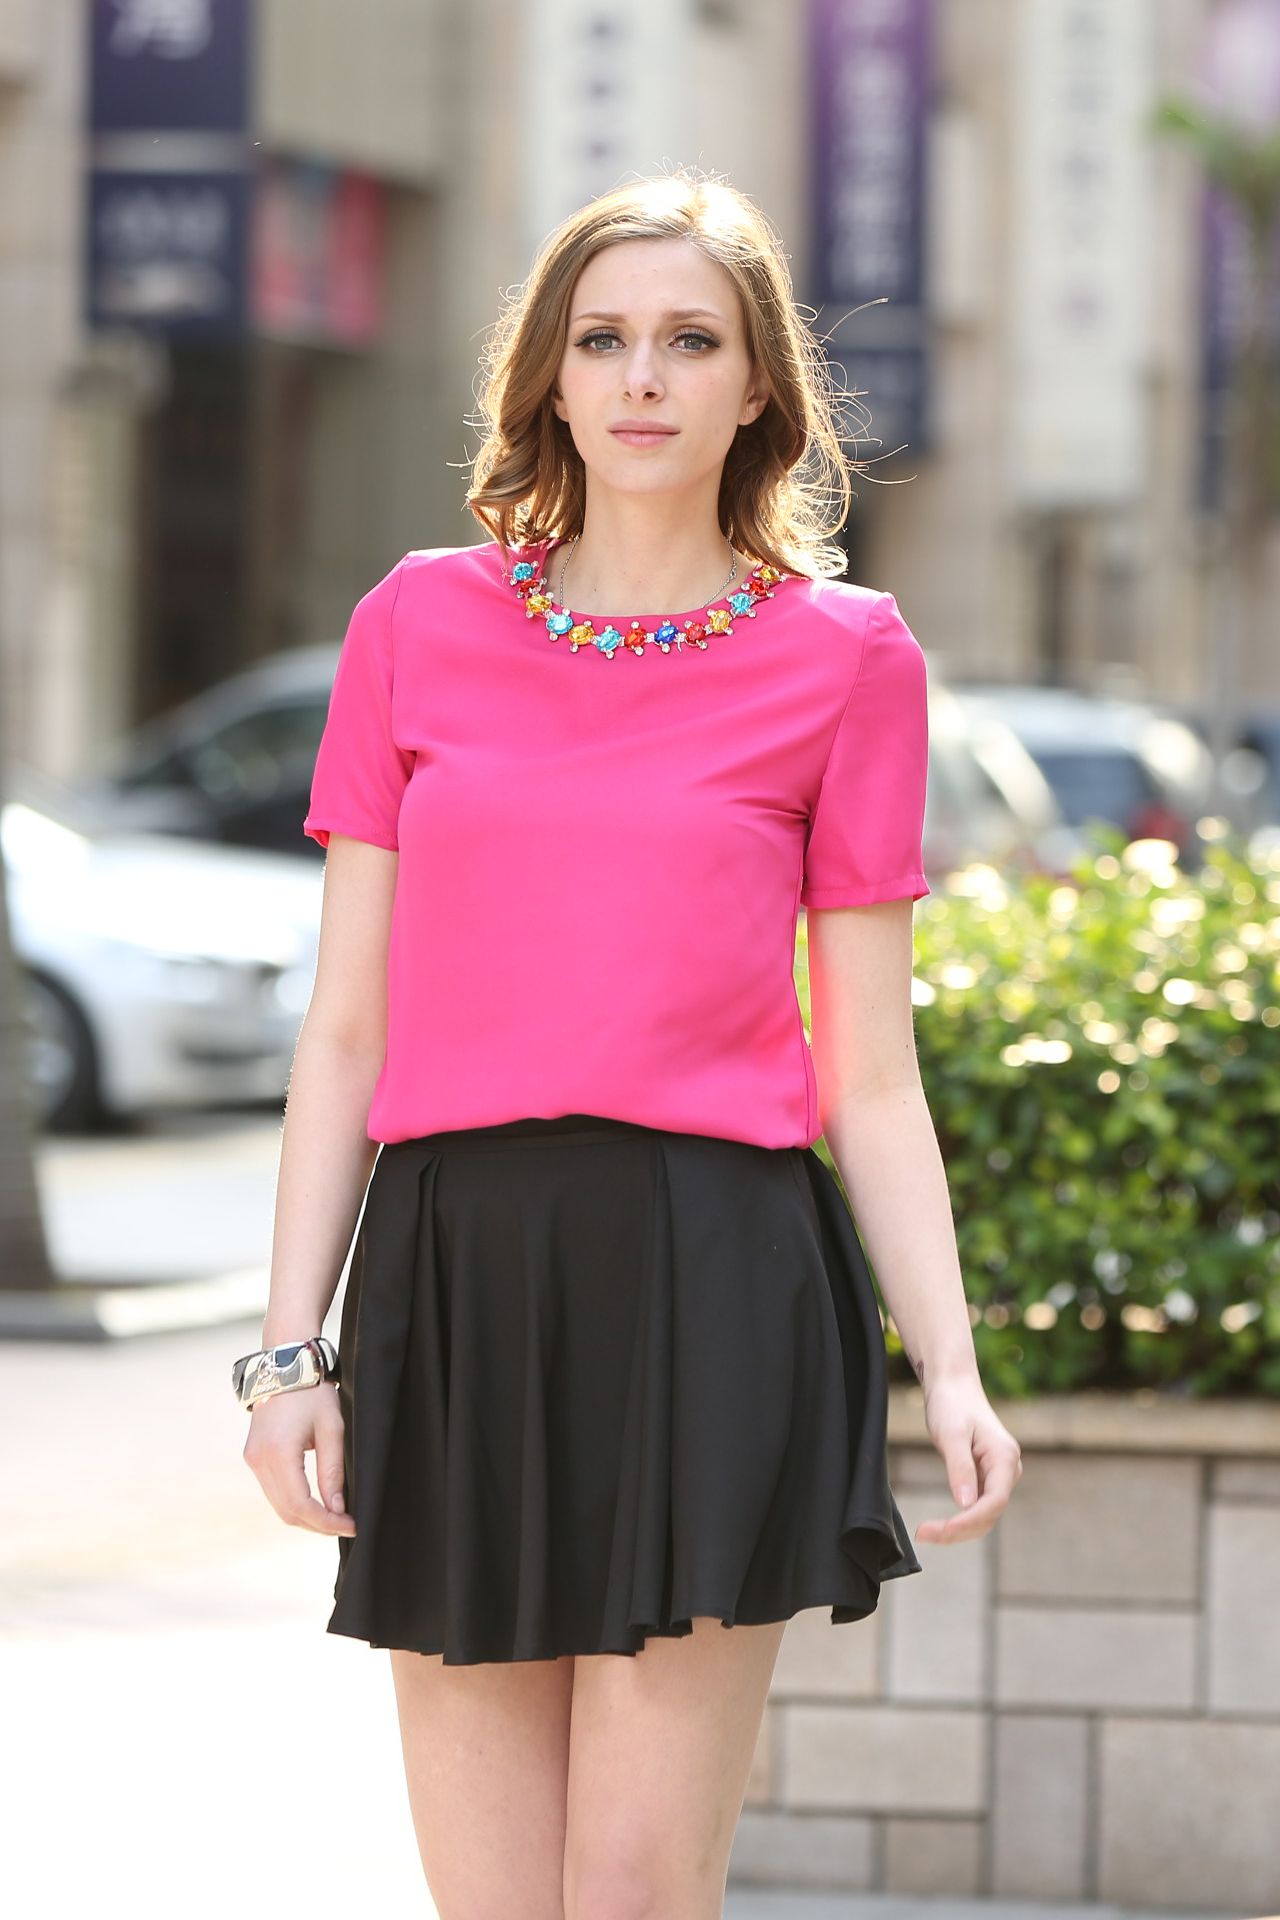 Sweet Pink Top With Embellished Collar | This Is Why I\'m Broke ...